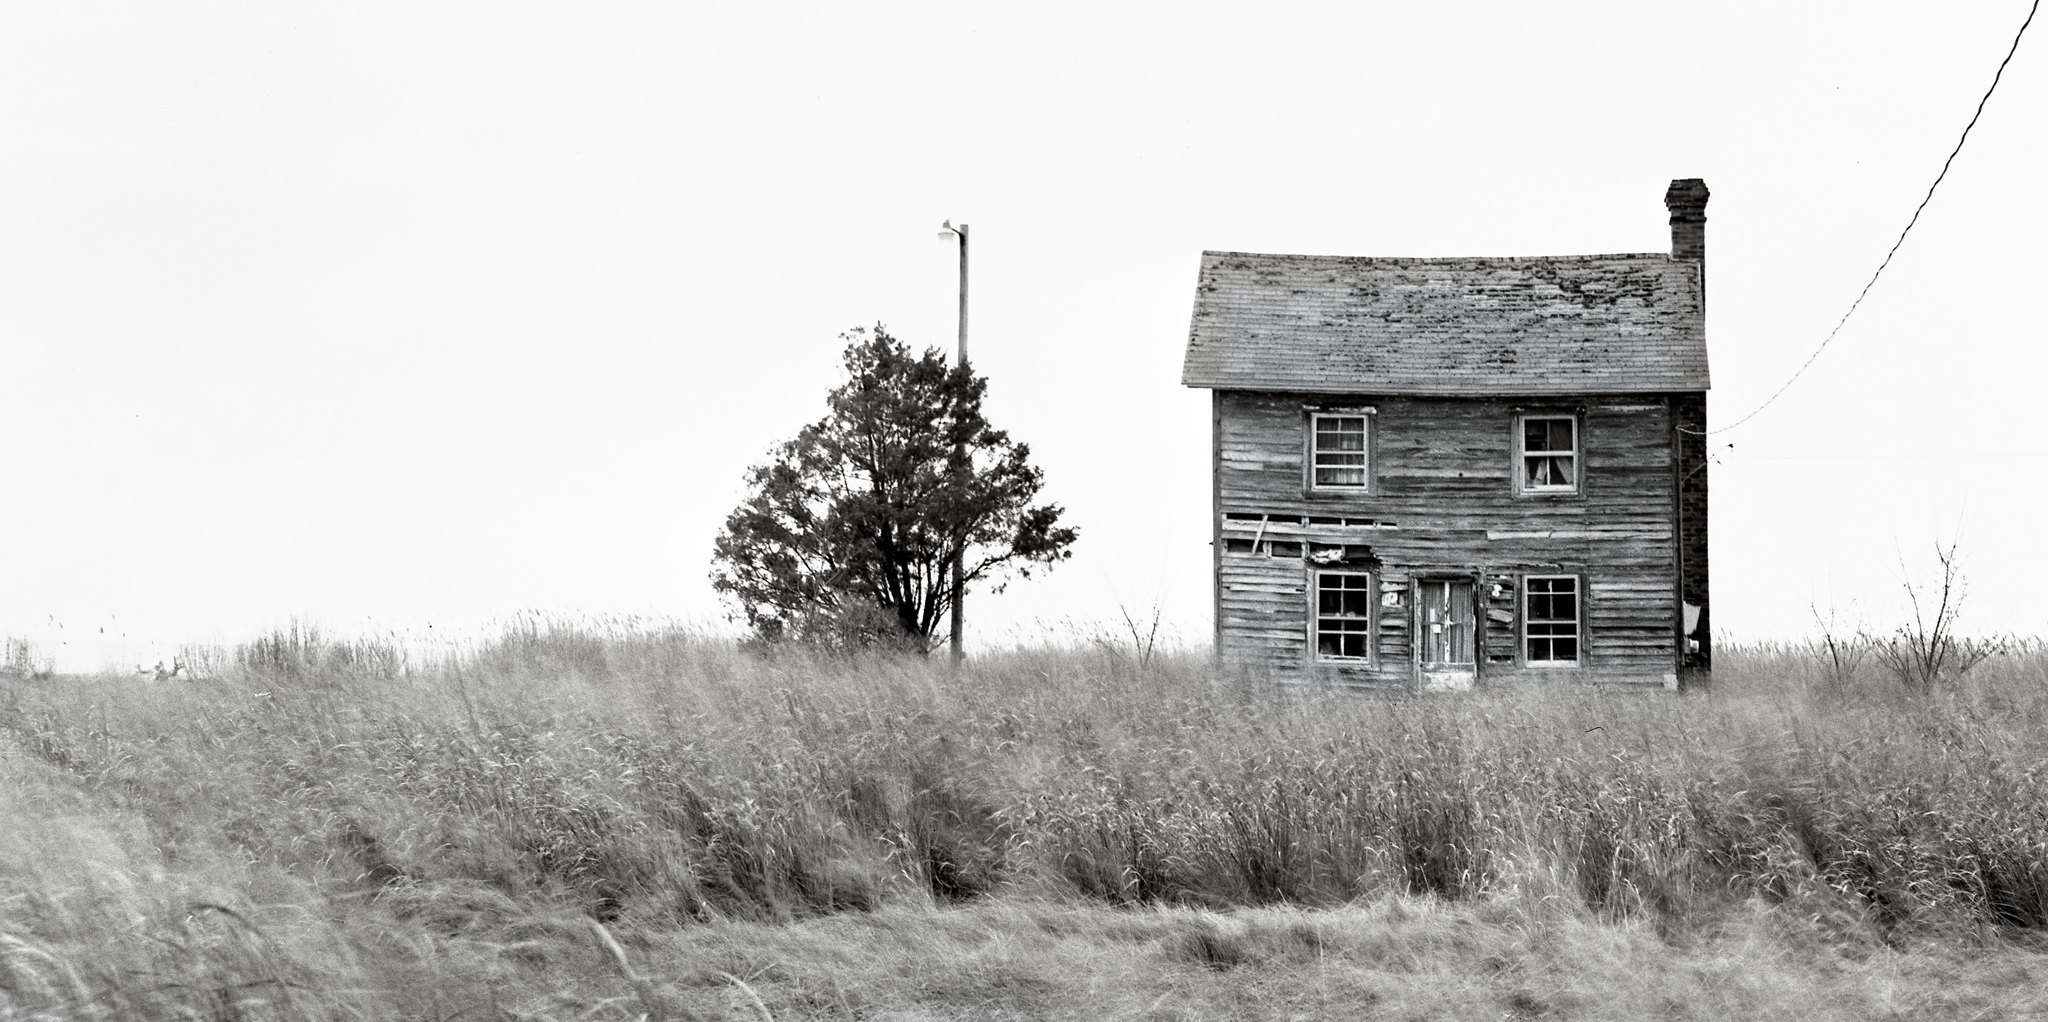 4x5_for_365_project_0111_hoopersville_Abandoned_House.png